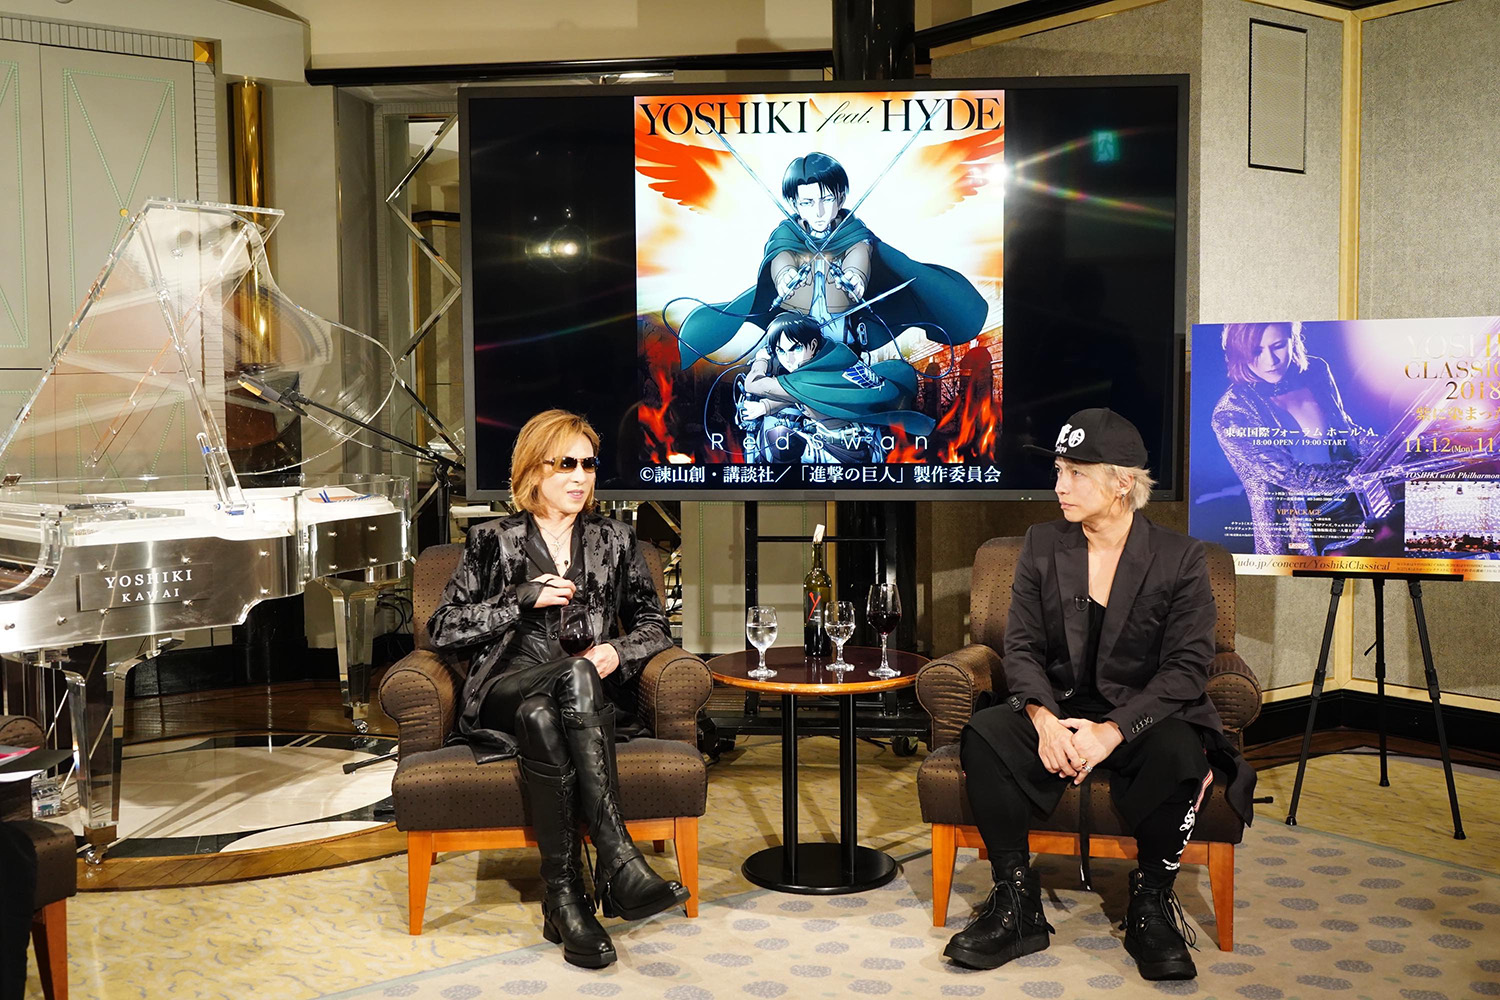 JRock247-Yoshiki-Hyde-Red-Swan-Music-Station-20180917-I0583